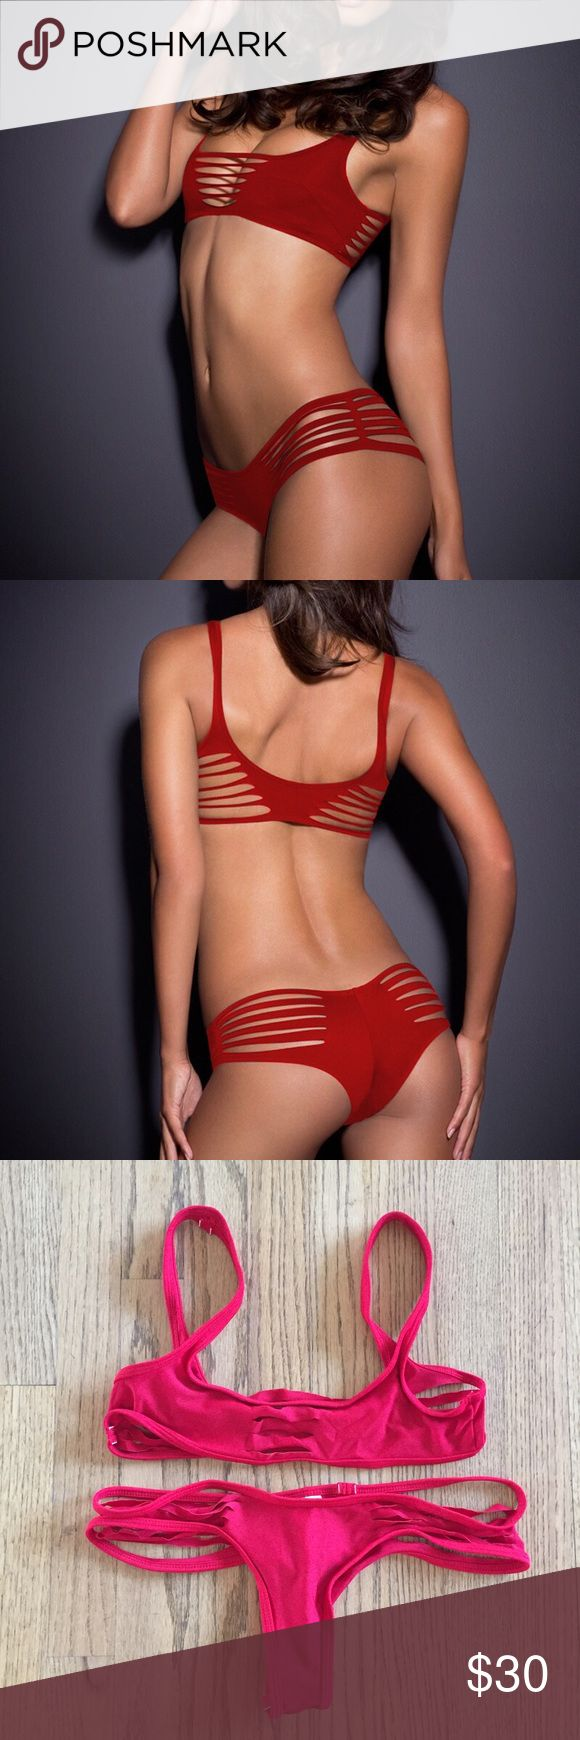 Brand new red cut out bikini swim set L This's not Beach Bunny brand. Brand new handmade red bikini swim set size L. Premium fabric of 80% Nylon and 20% Spandex. Look exact like Agent Provocateur swimsuit. No padding no lining. Selling a set only. NO trade. Price is FIRM Beach Bunny Swim Bikinis